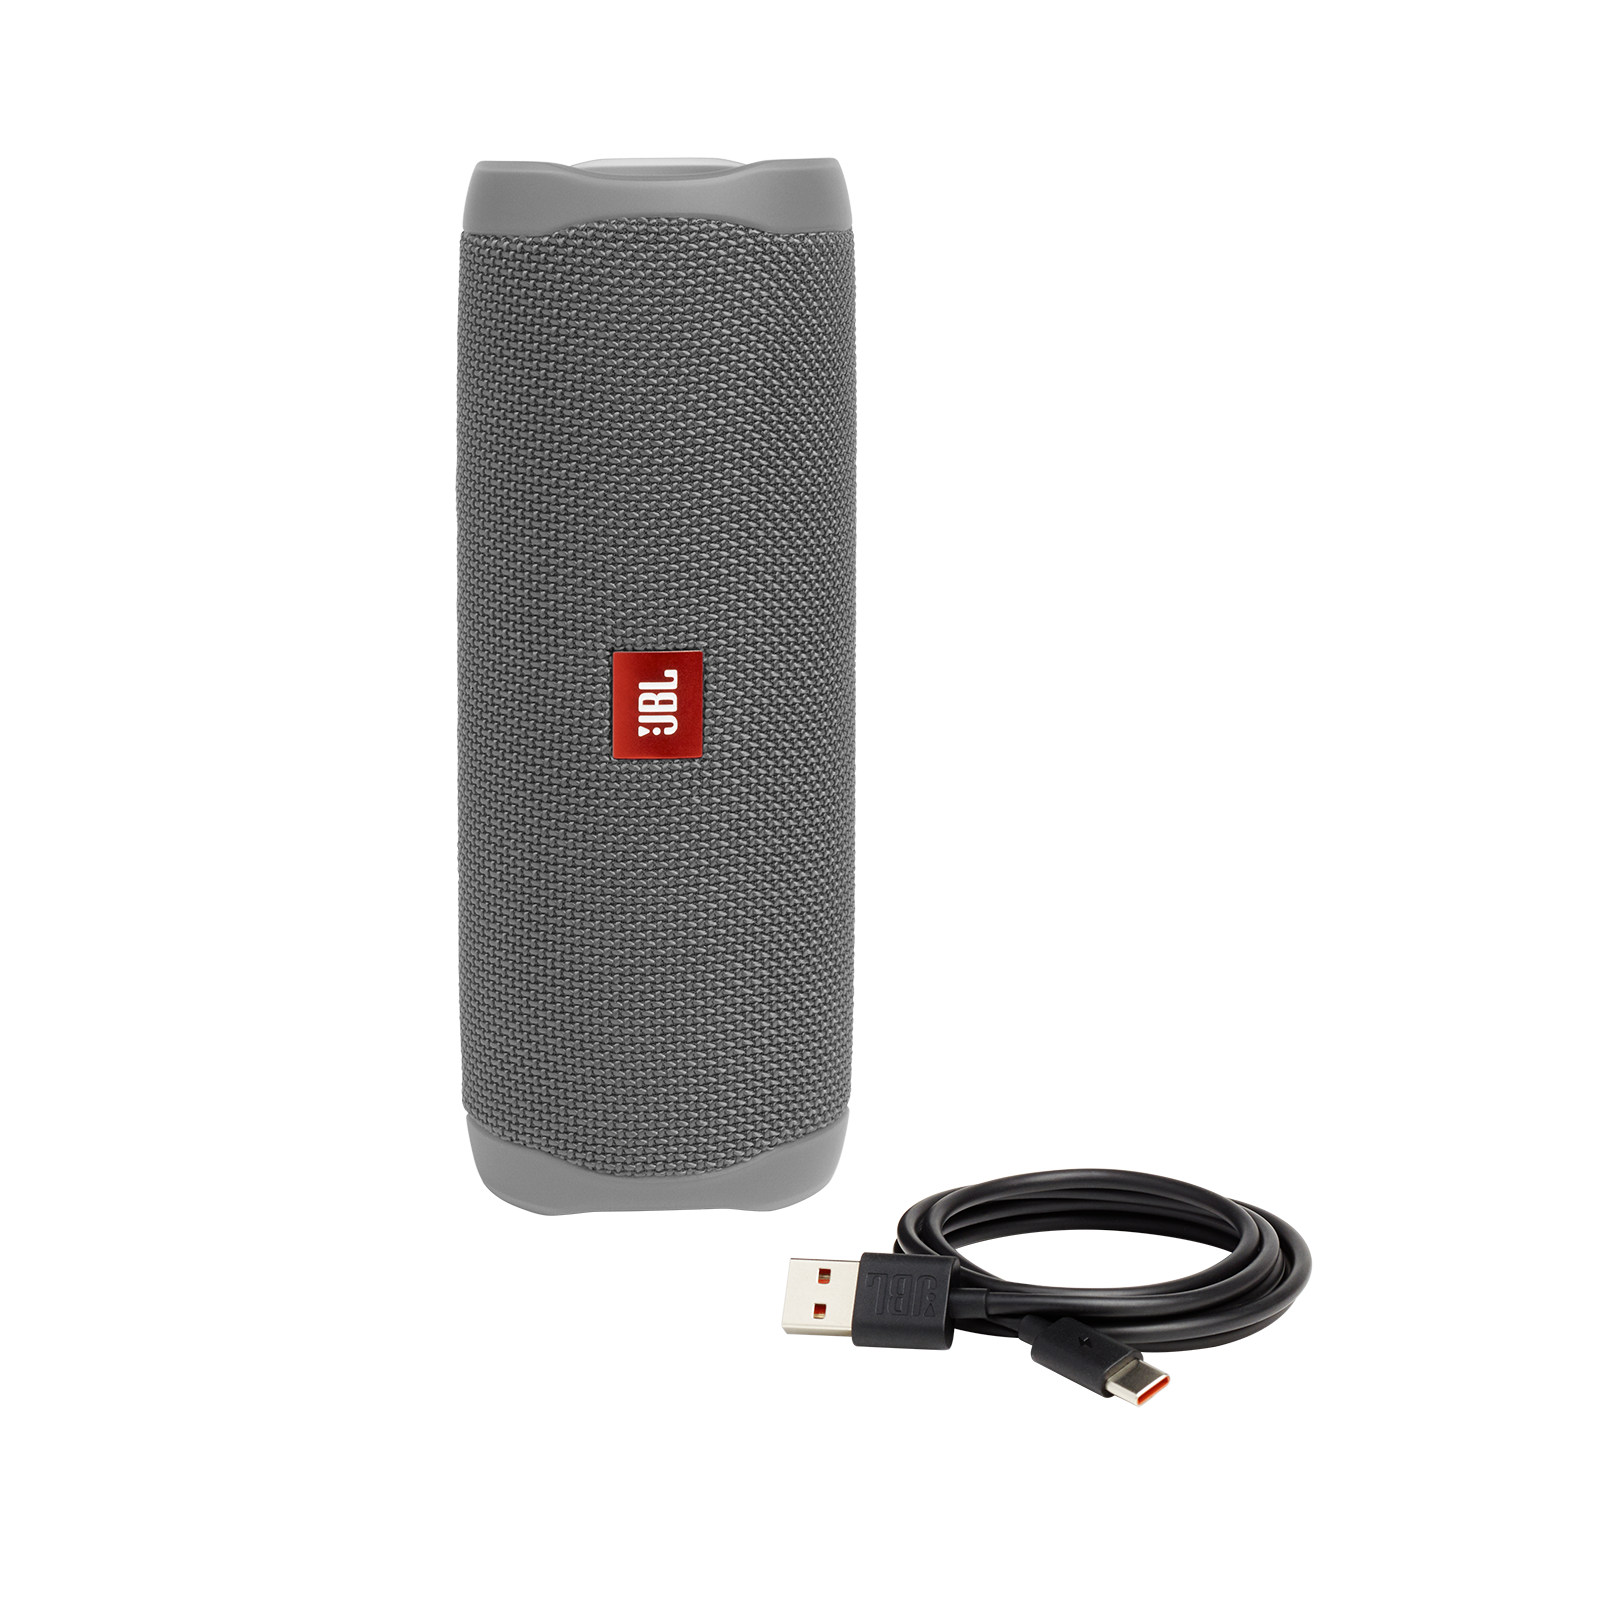 JBL FLIP 5 - Grey - Portable Waterproof Speaker - Detailshot 1